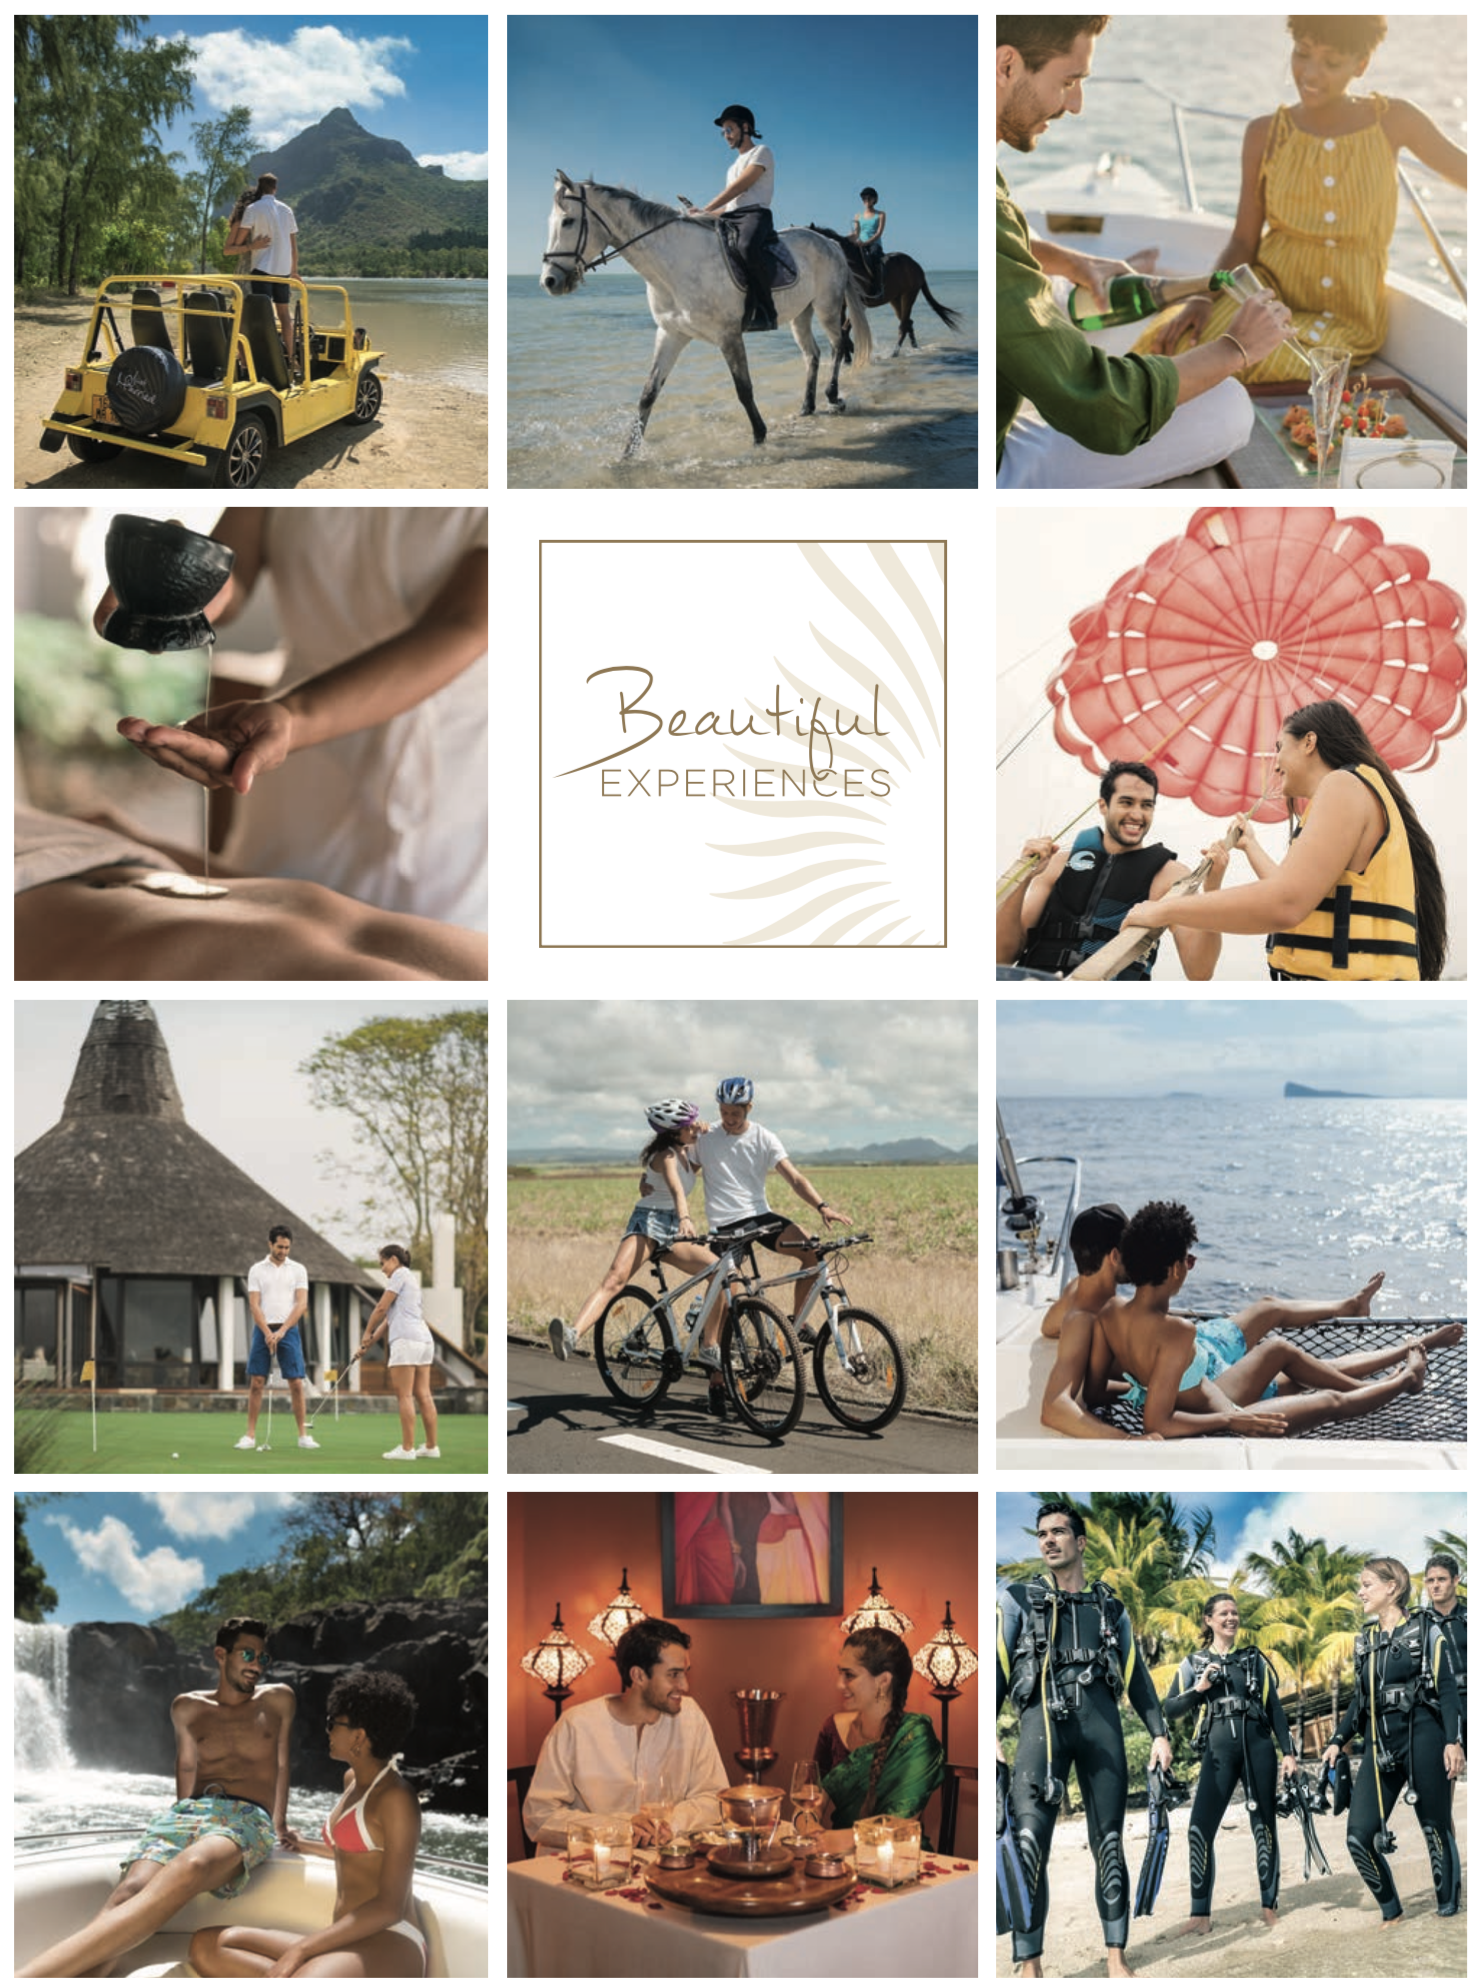 Beautiful Experiences Beachcomber Mauritius